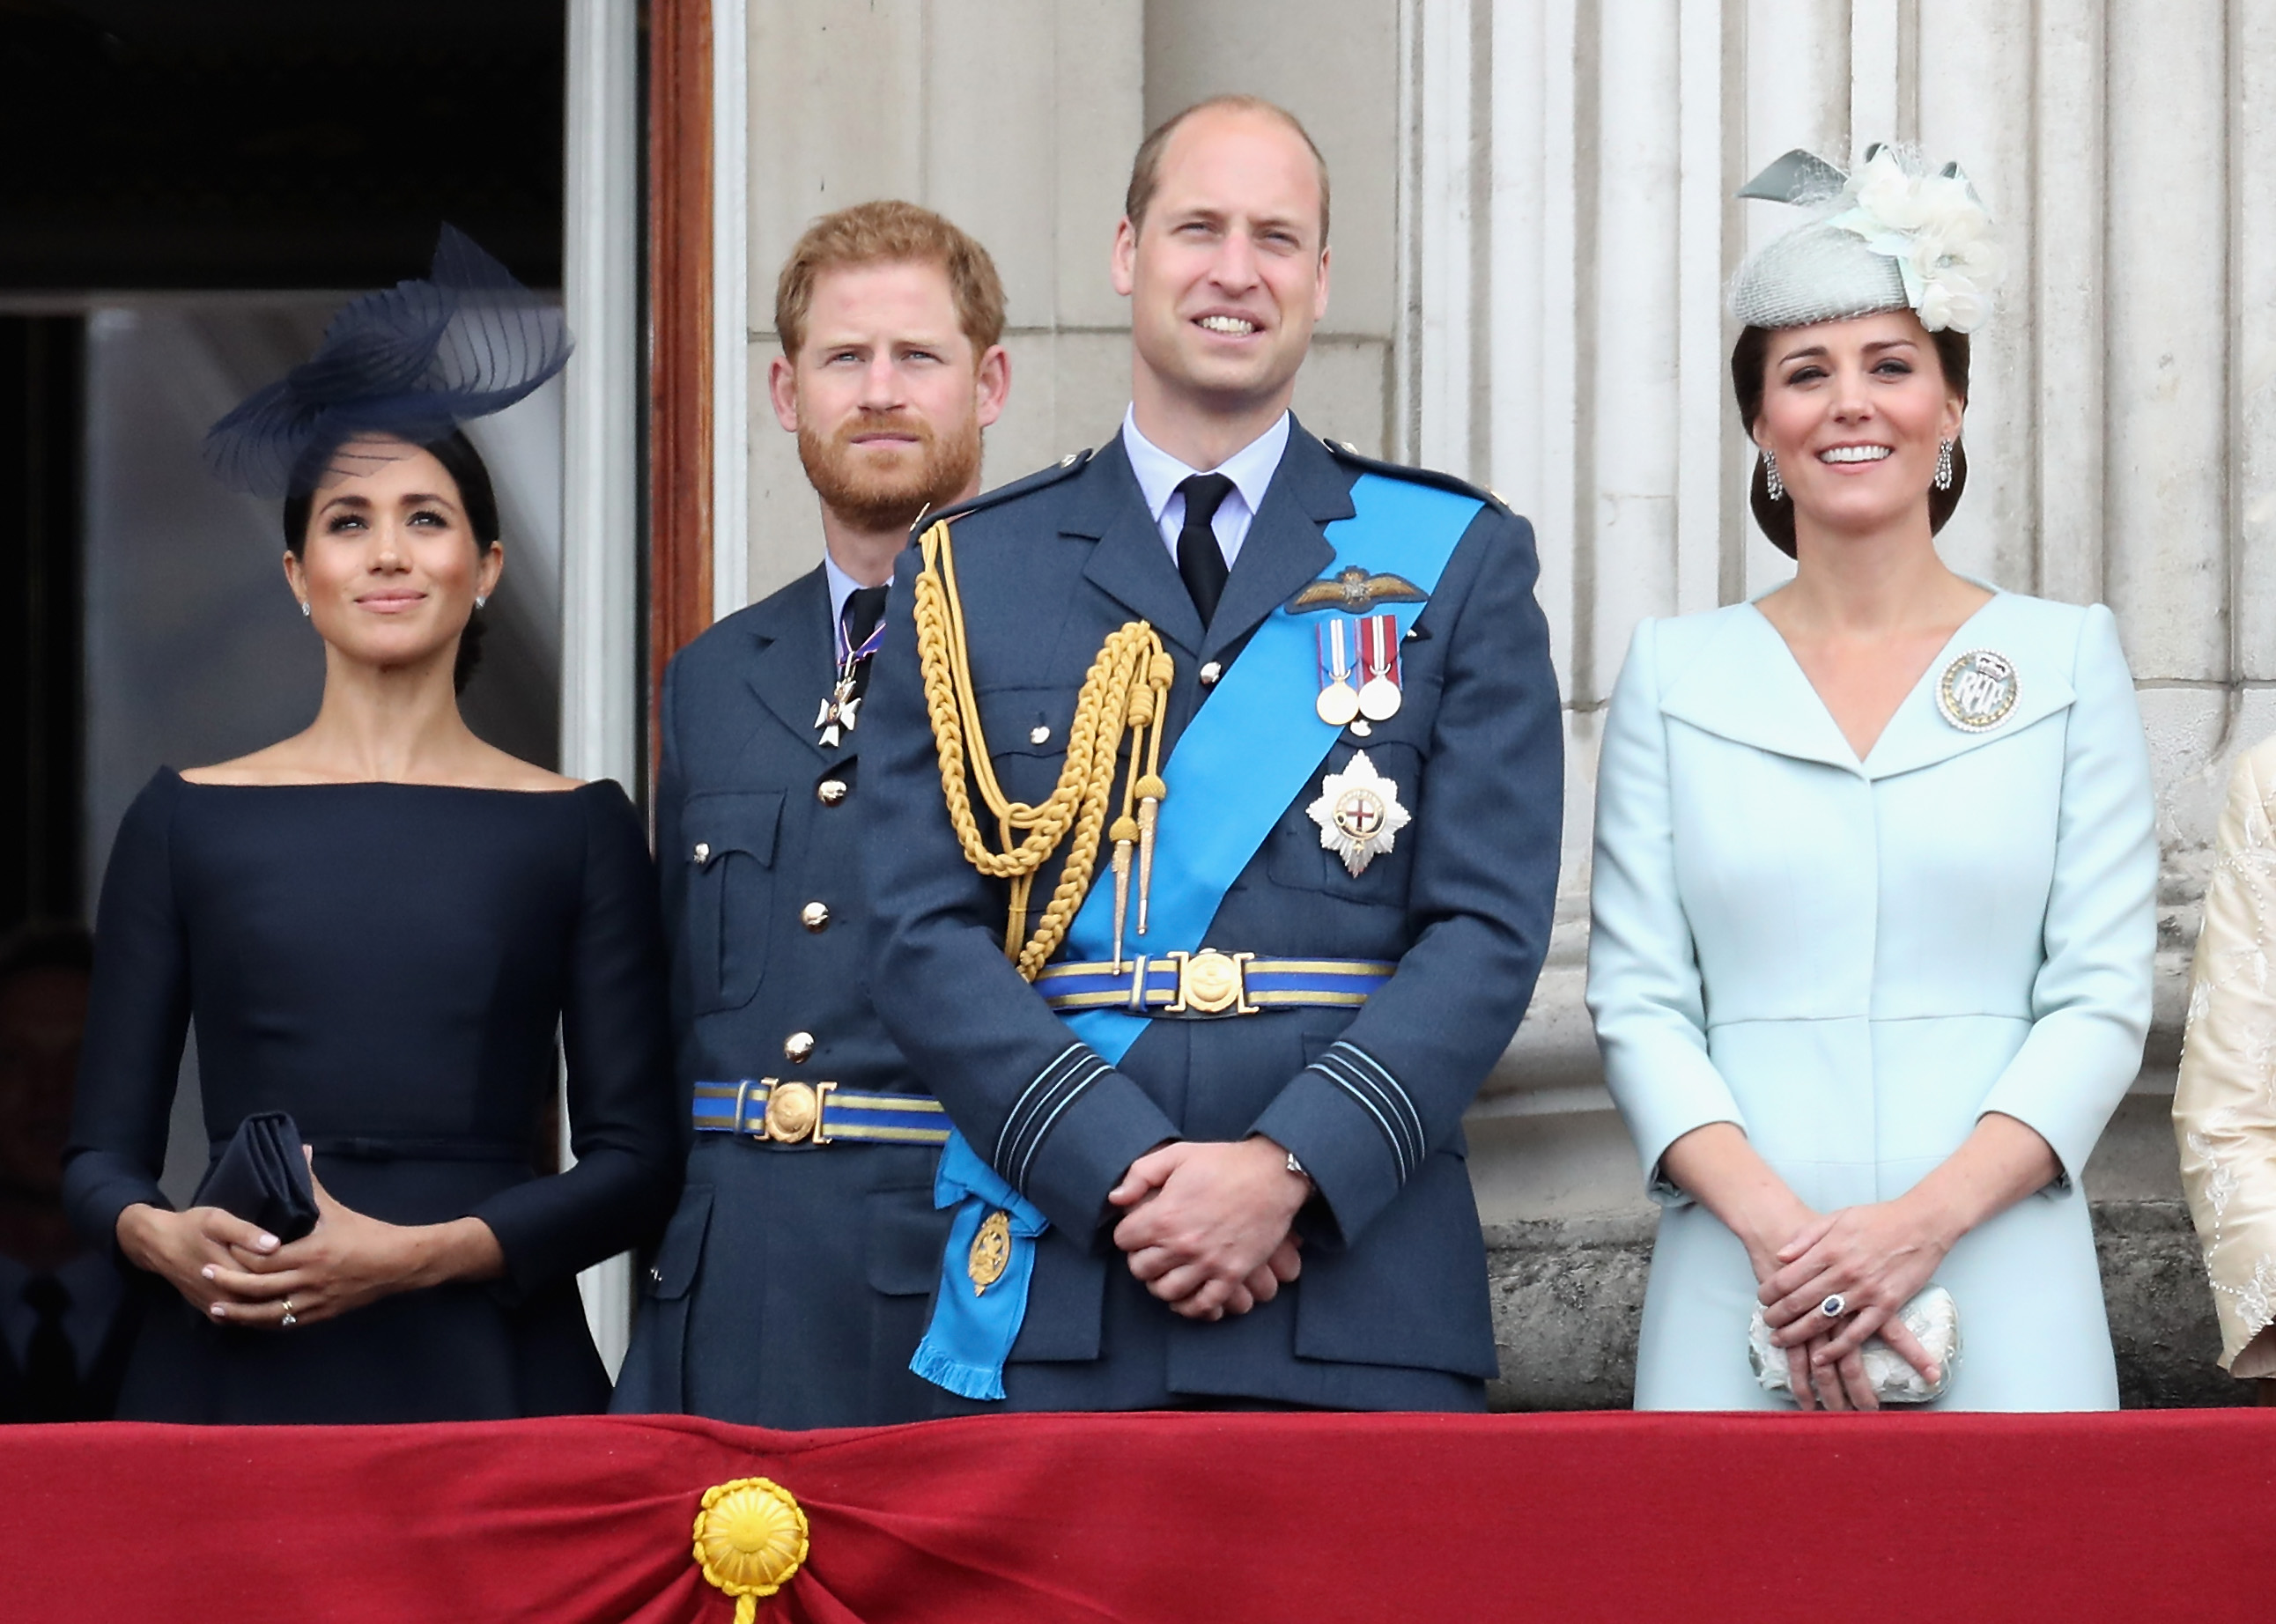 meghan-markle-kate-middleton-principe-harry-william-familia-real